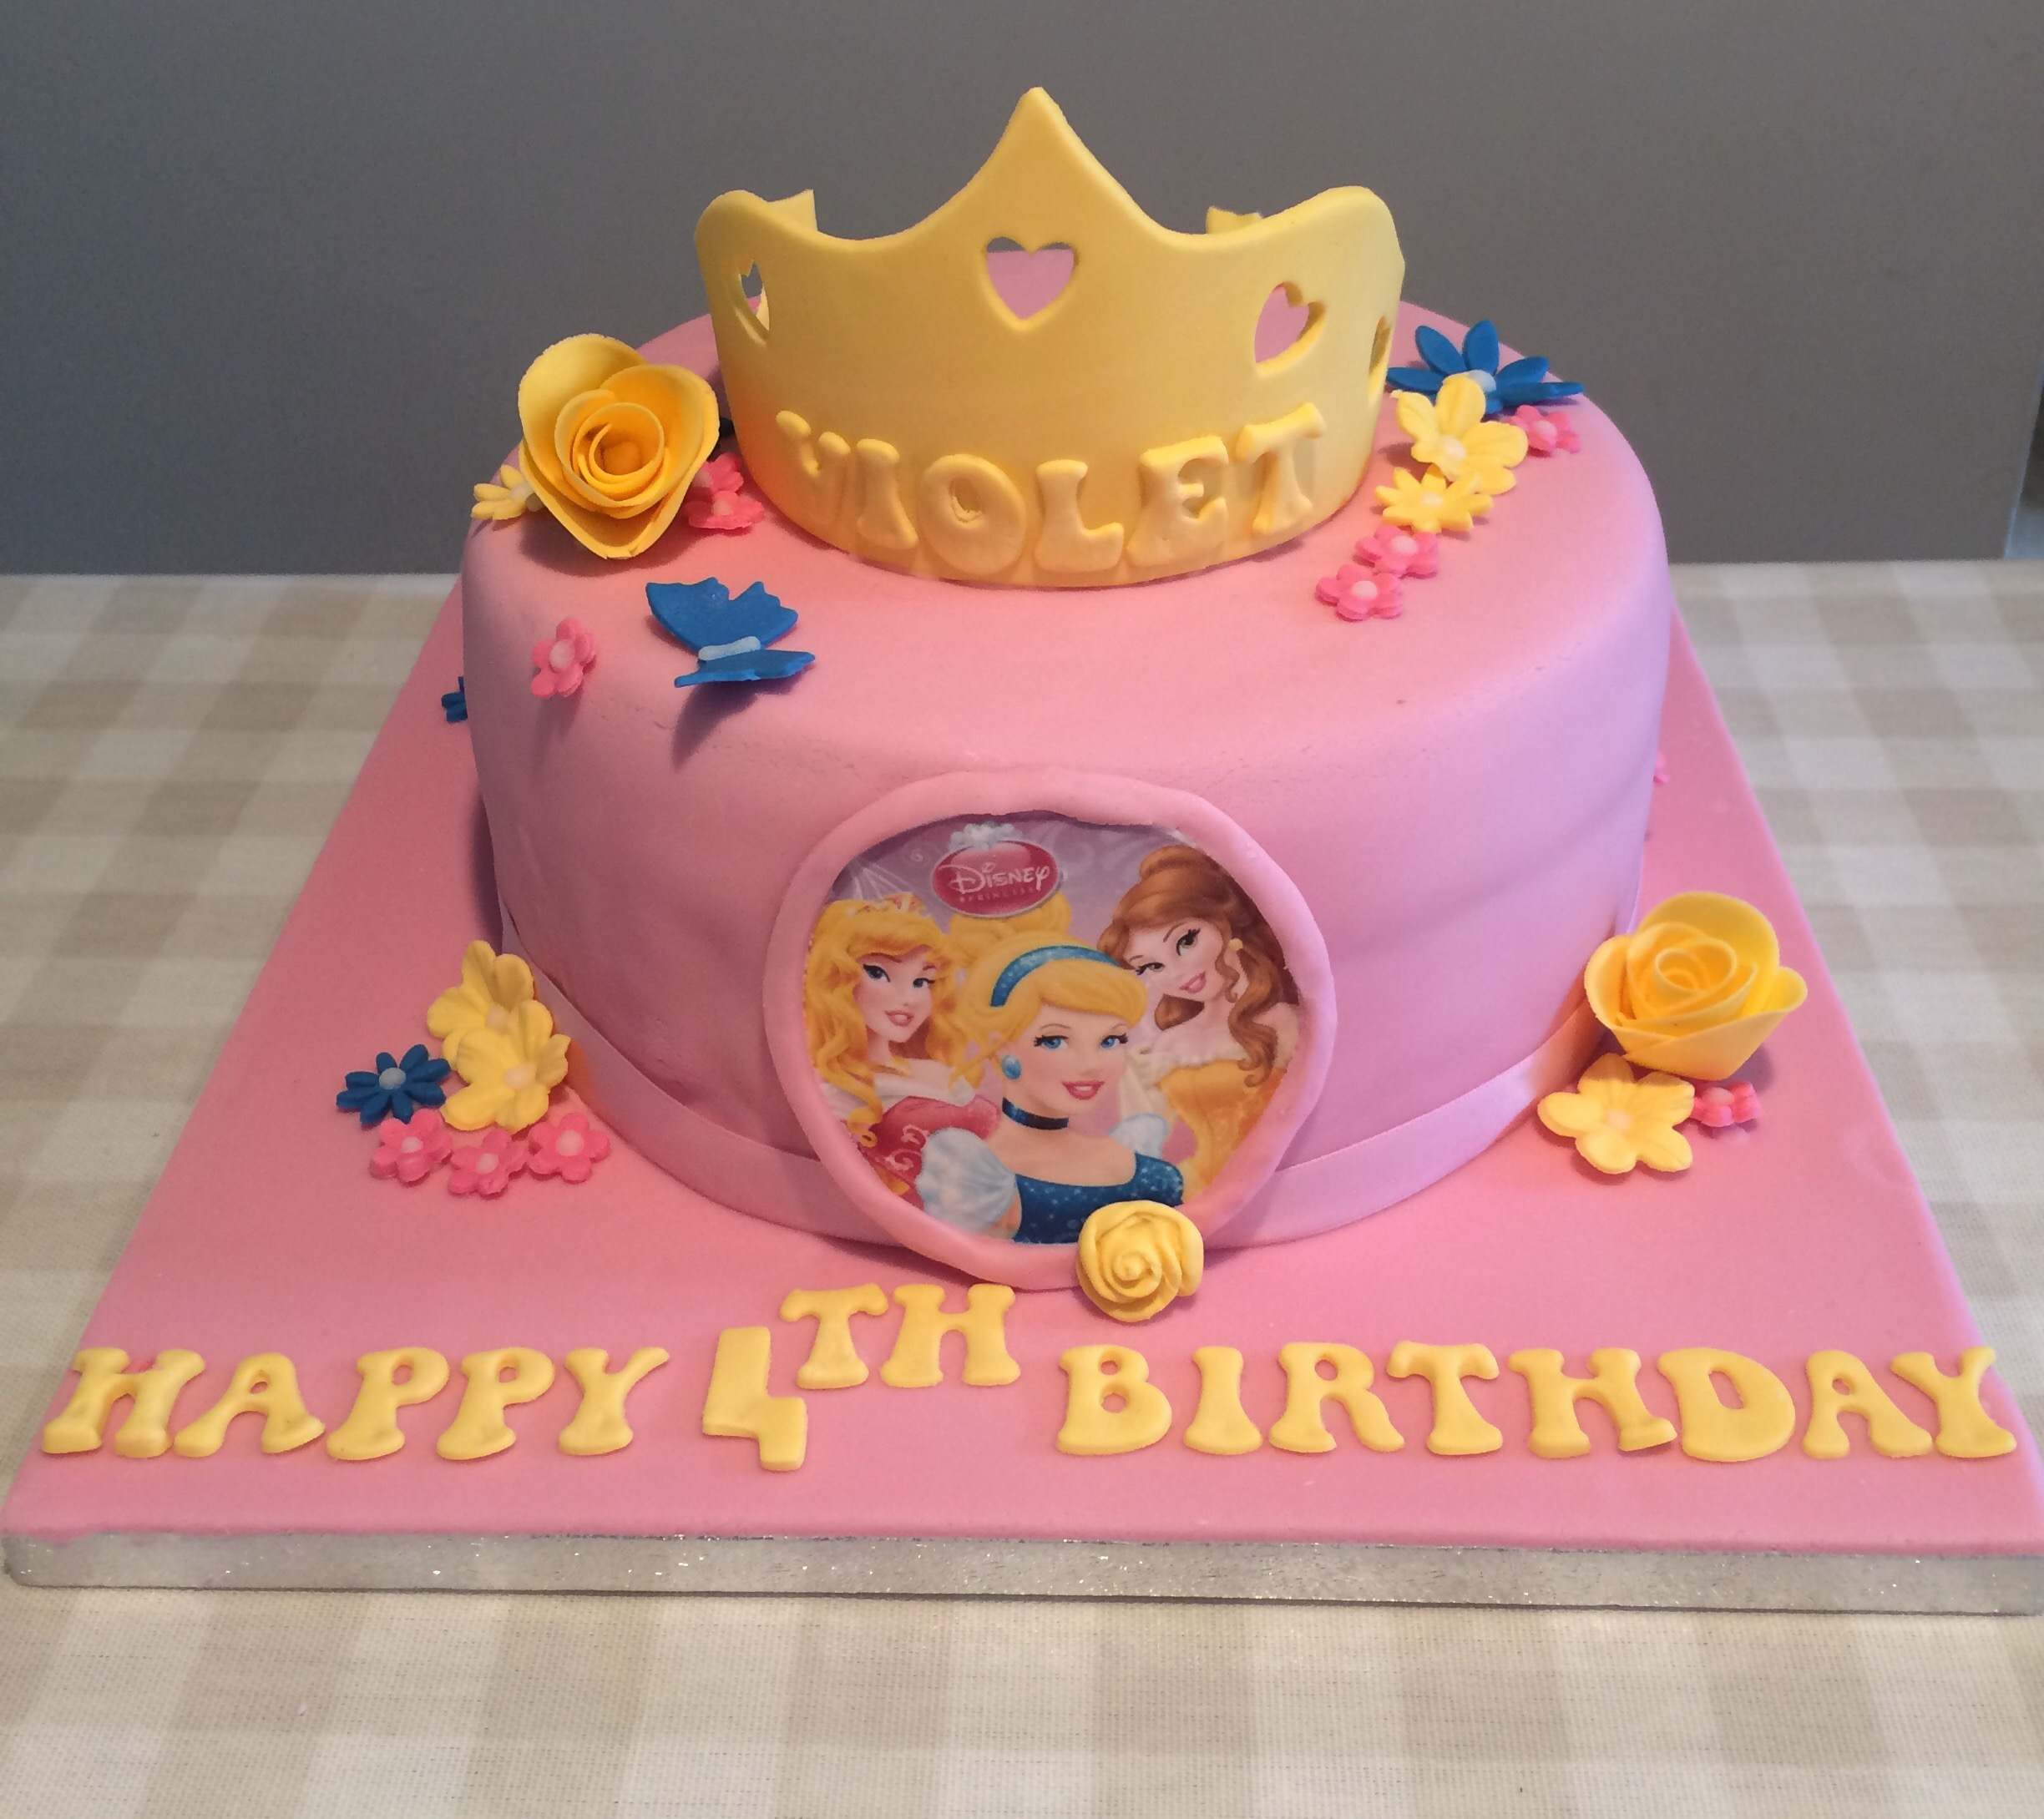 4 Year Old Girl Birthday Cake Ideas